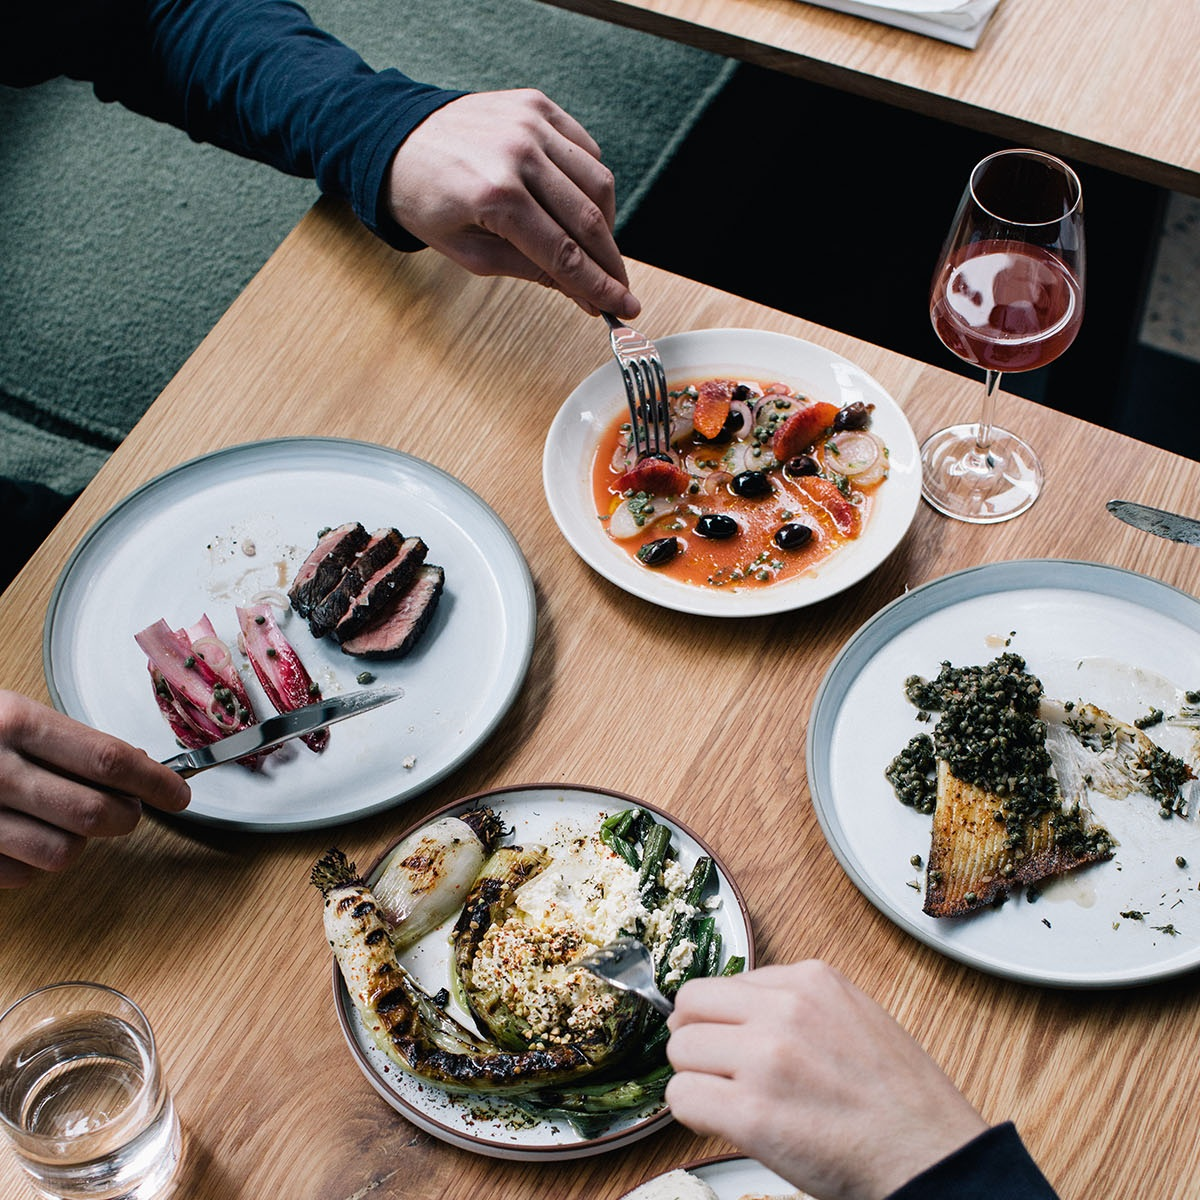 Dining. - Our menu is a collection of small plates designed for sharing, the dishes change depending on whats in season and the quality of the produce available.